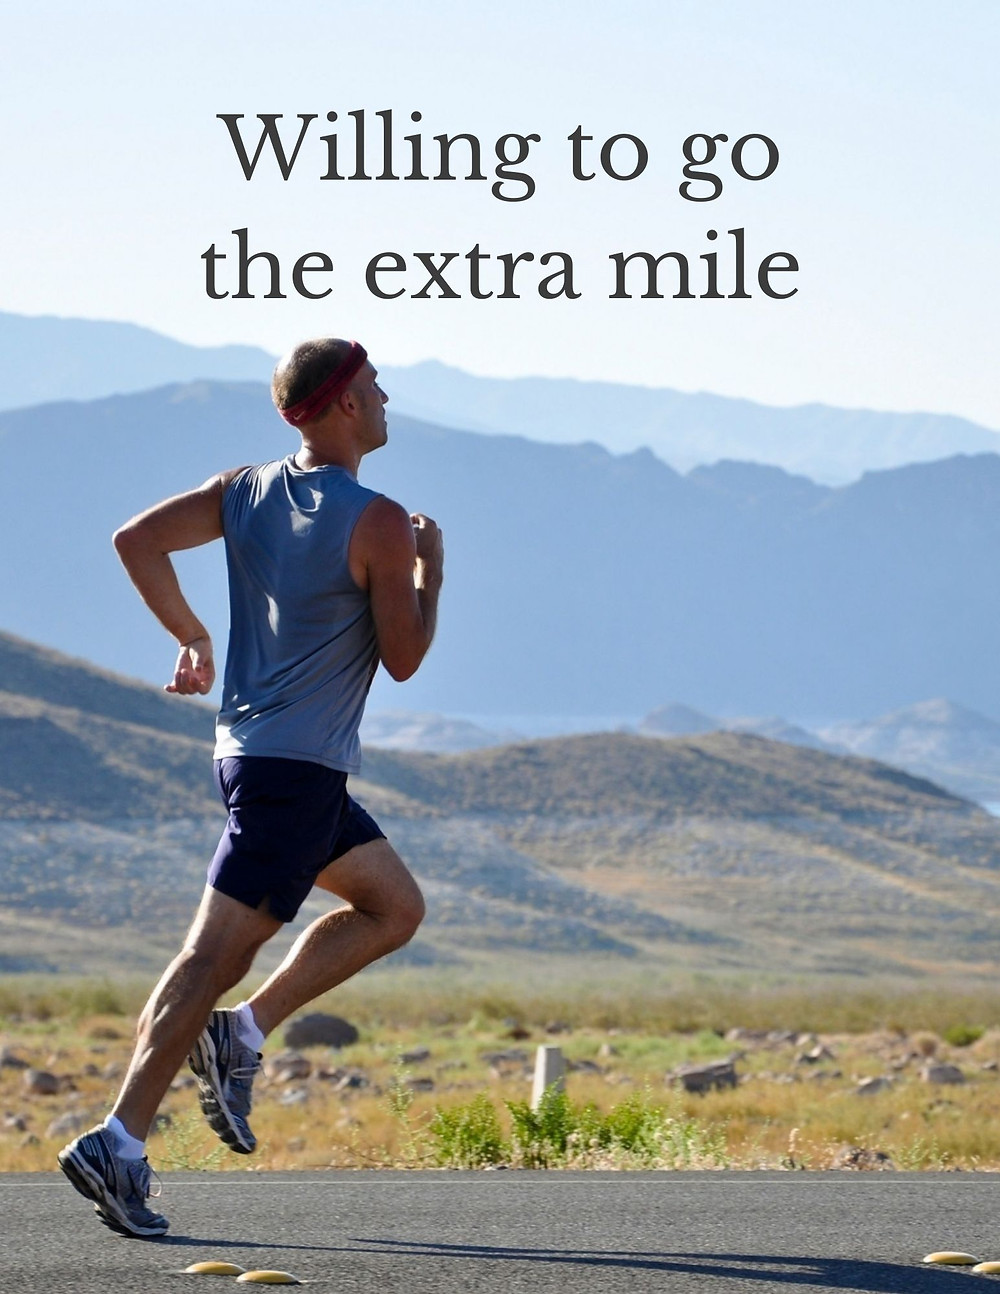 Willing to go the extra mile